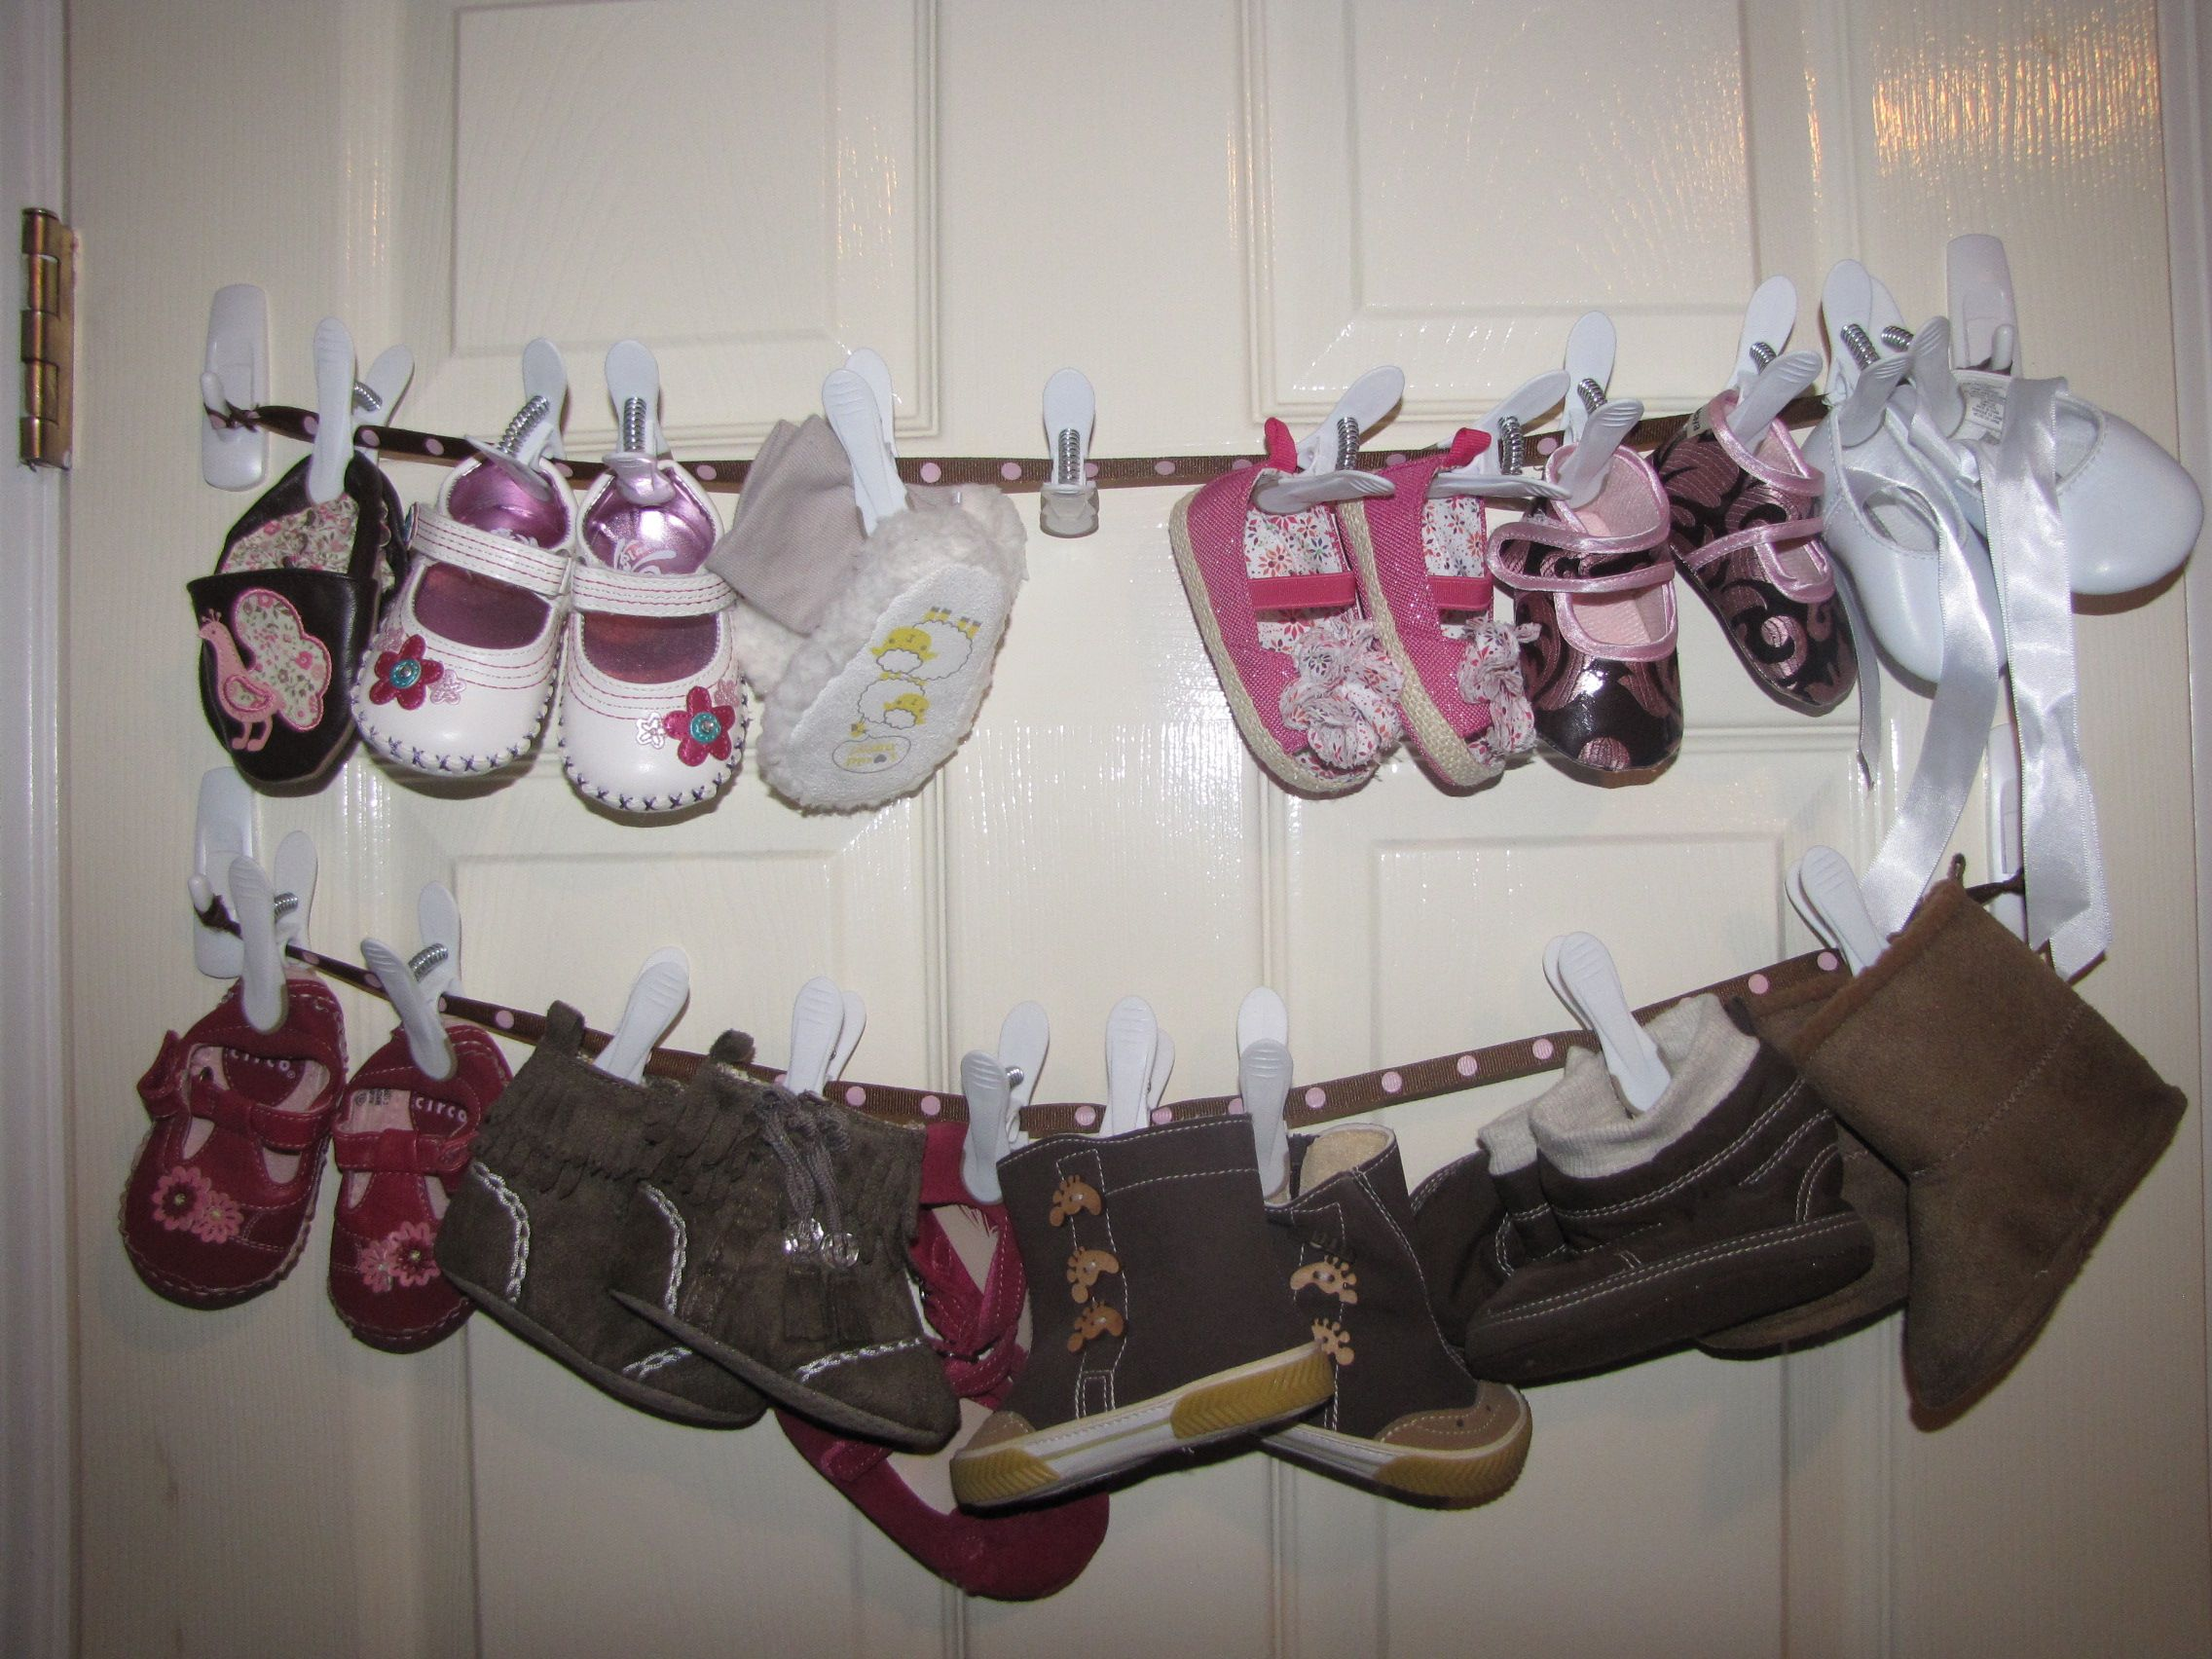 Baby shoe storage 3M hooks ribbon and clothes pins on the back of